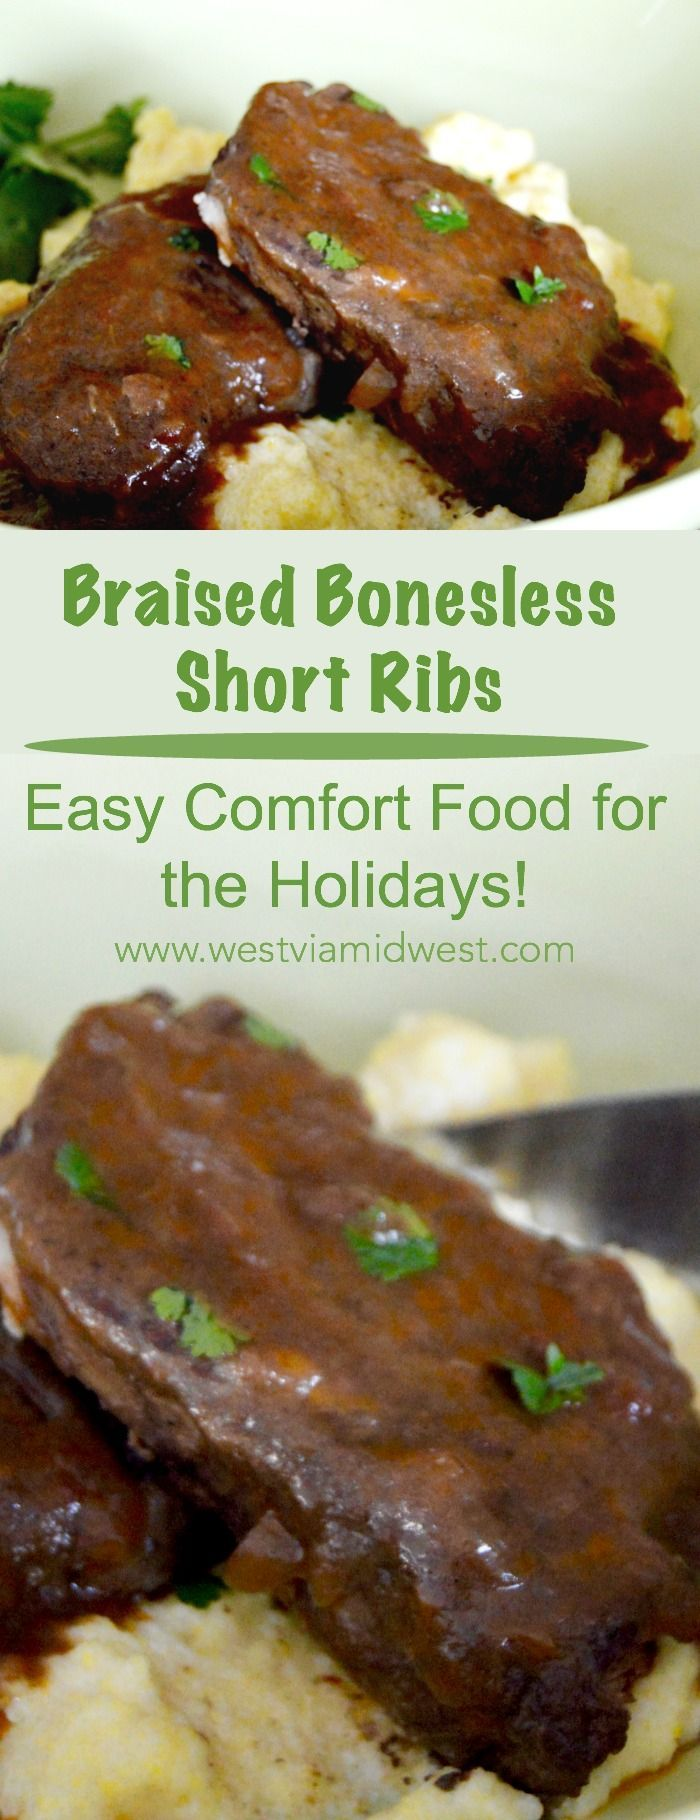 Braised Boneless Short Ribs: fork tender boneless short ribs in a smokey, coffee and wine infused sauce. Complete comfort food that is ideal for entertaining. #christmas #holiday #entertaining #Comfortfood #bonelessshortribs www.westviamidwest.com via @westviamidwest